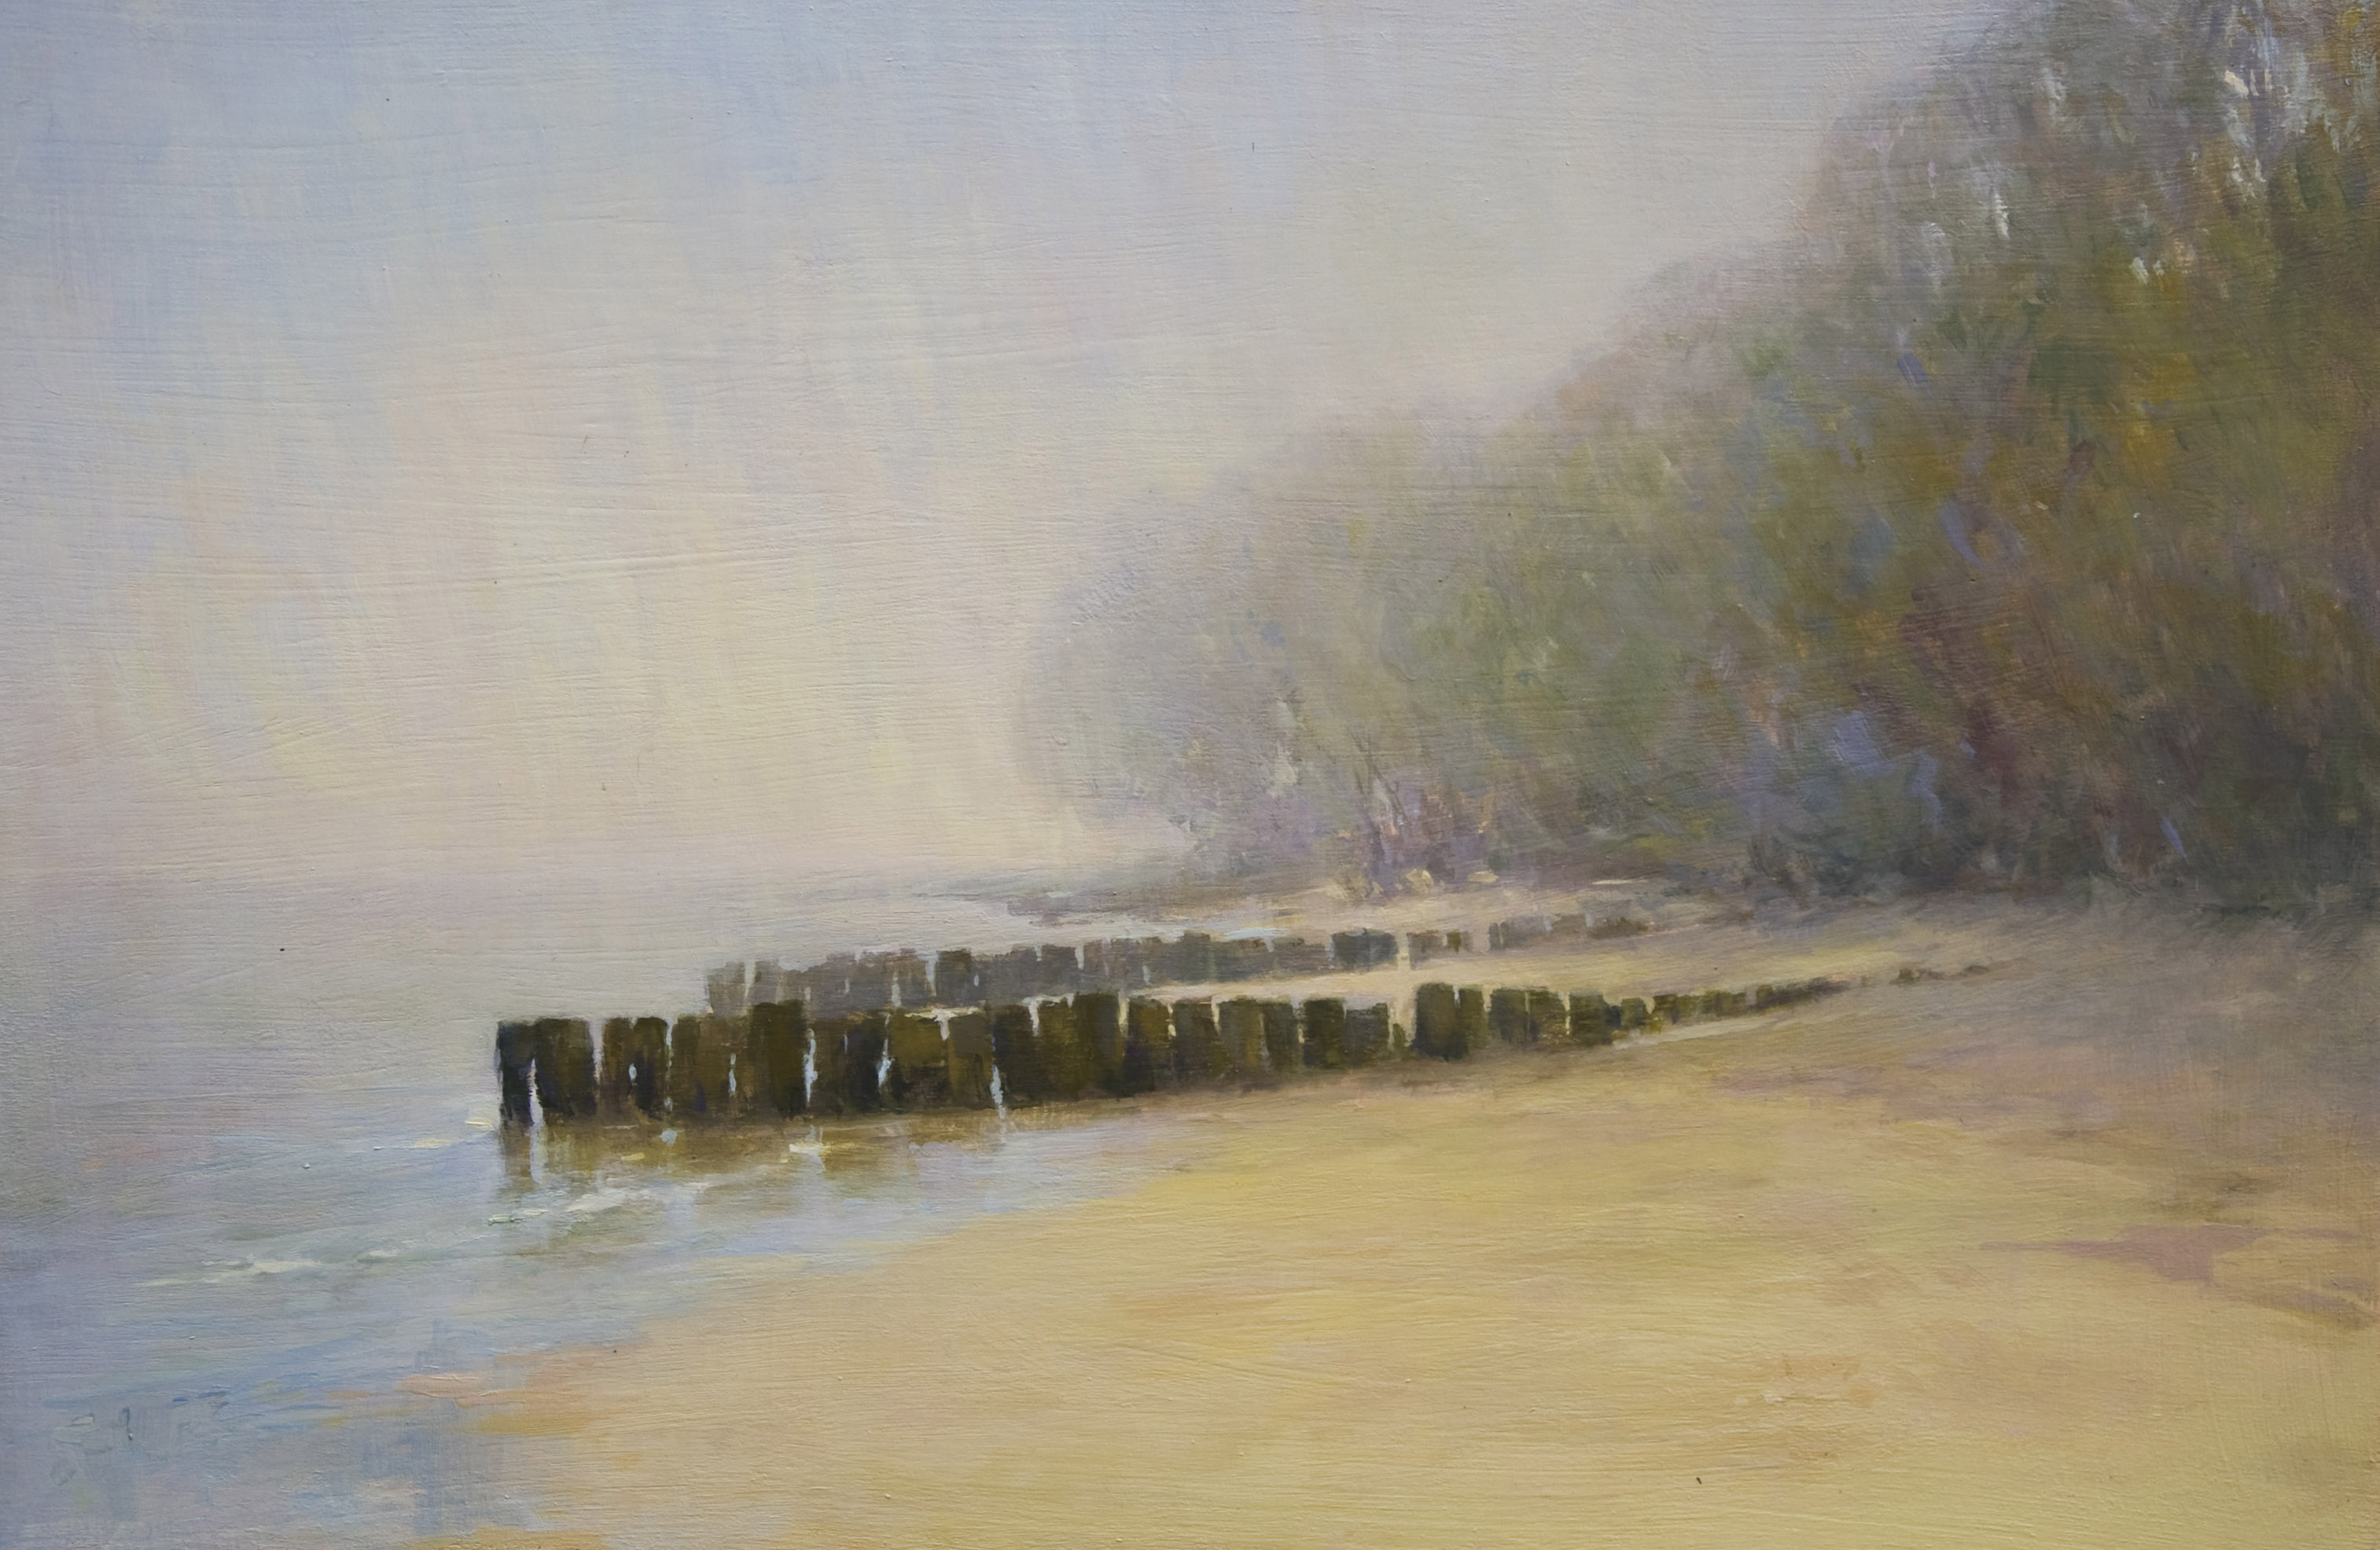 liftingfogbembridgebeach_annadennis_oilpainting